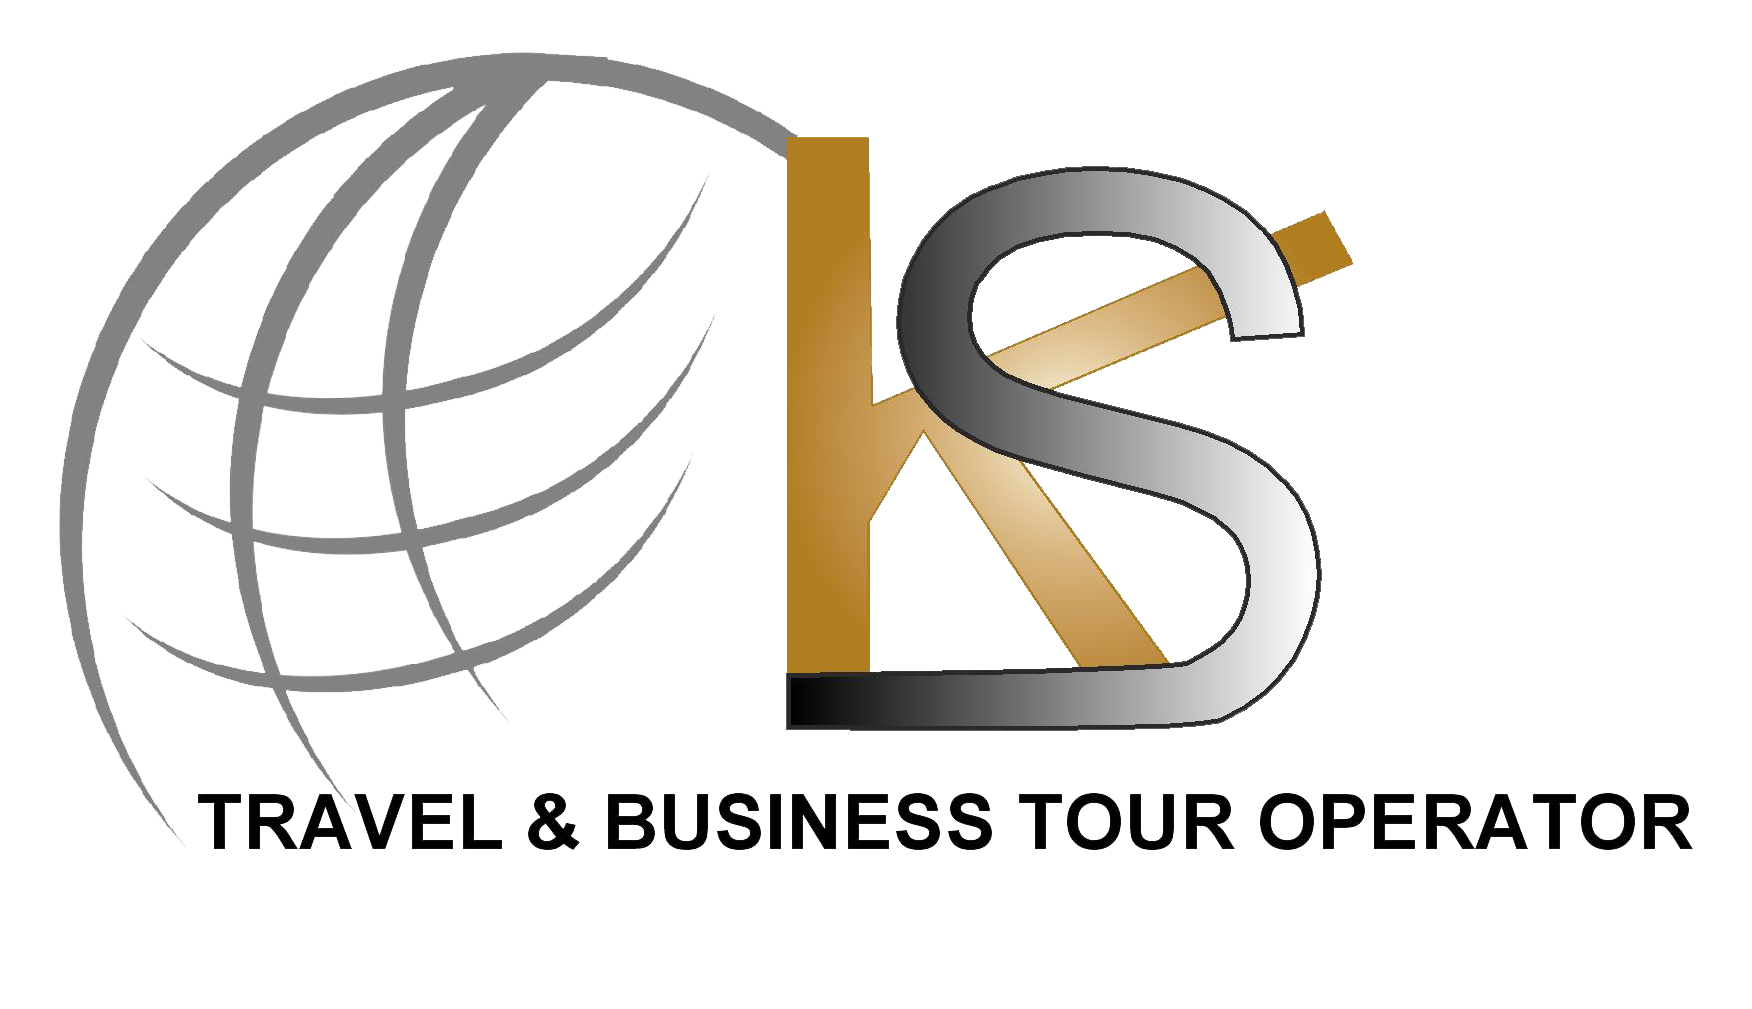 KS TRAVEL & BUSINESS